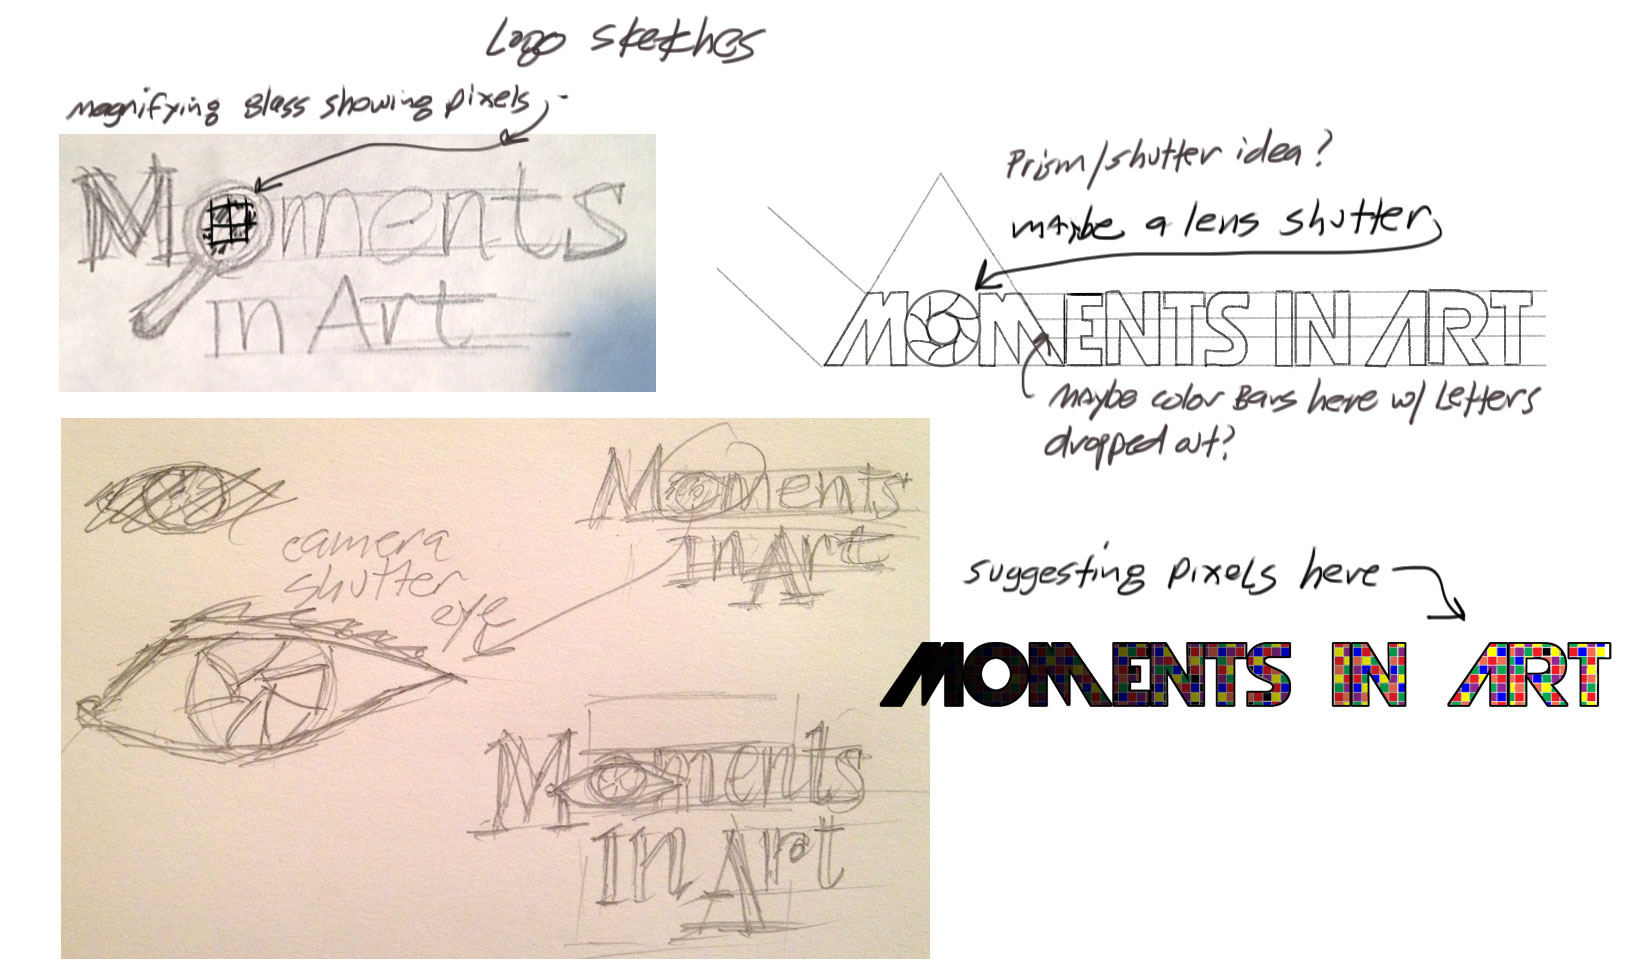 Moments in Art - image 5 - student project